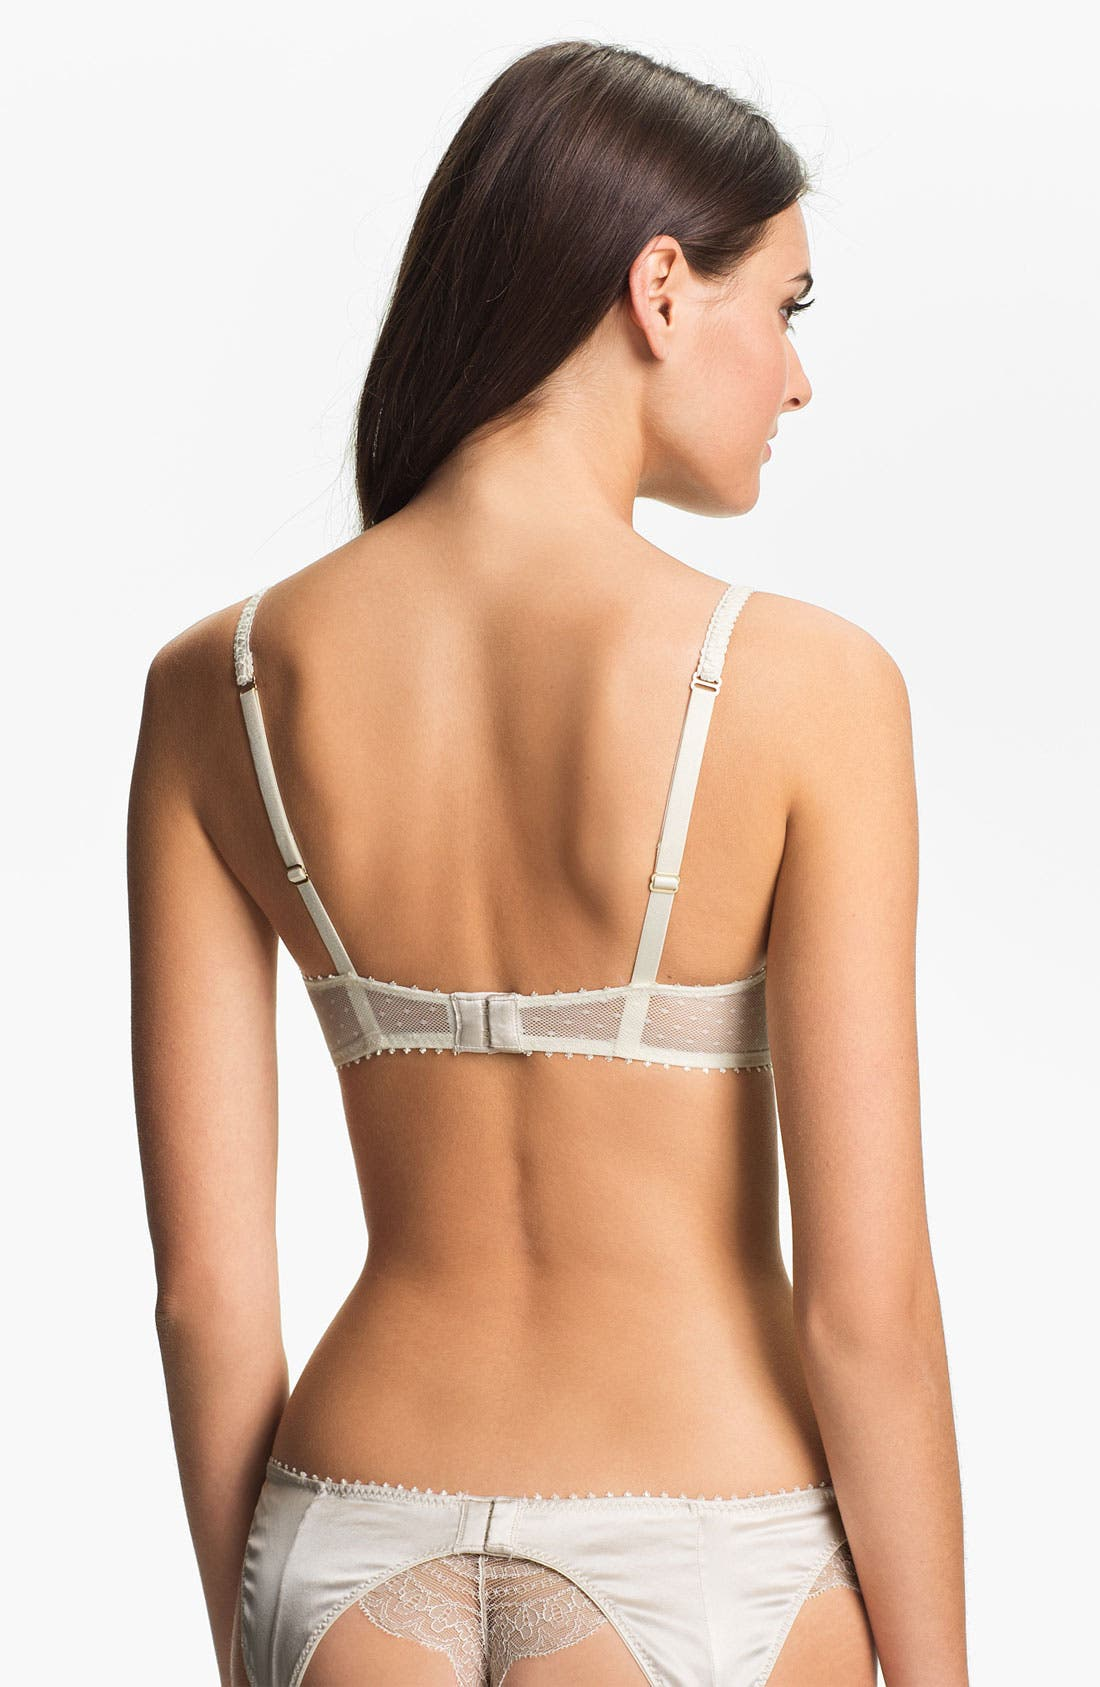 Alternate Image 2  - Stella McCartney 'Erin Wishing' Underwire Balconette Bra